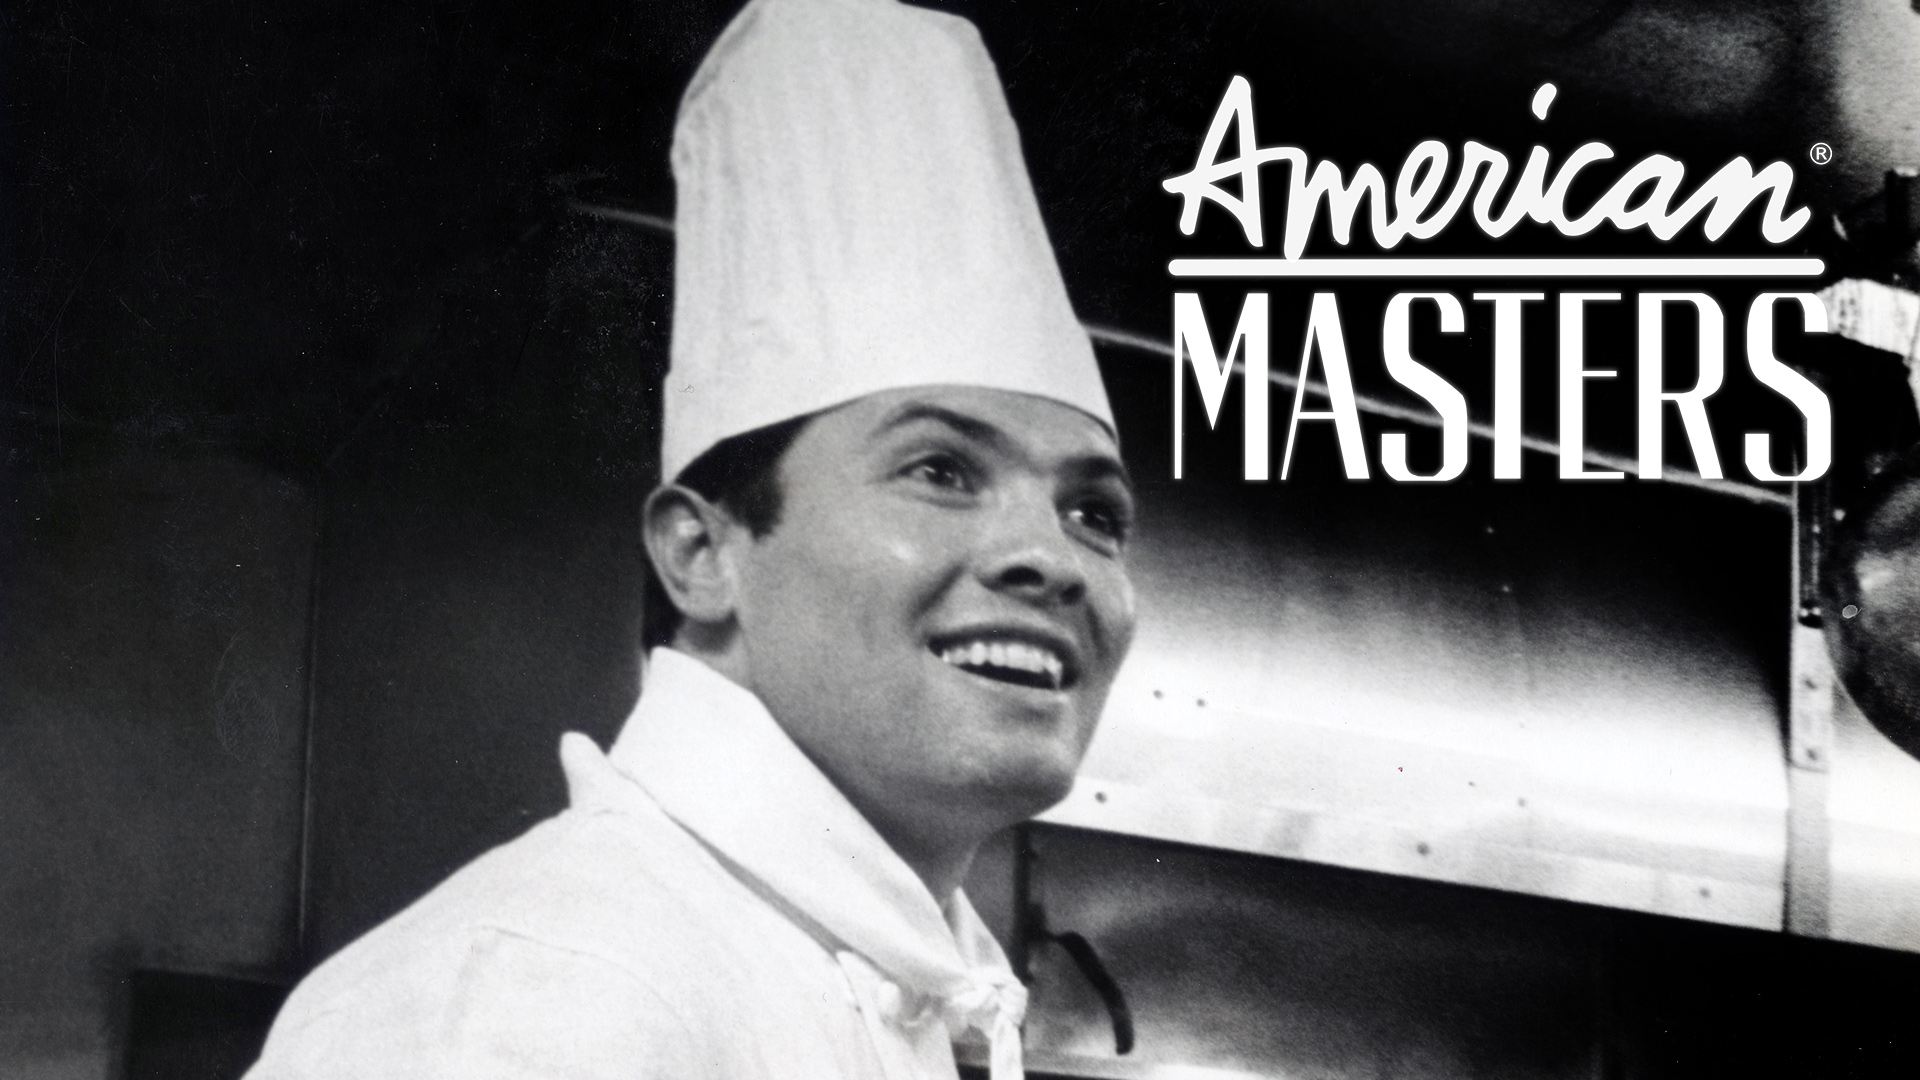 American Masters - Jacques Pépin: The Art of Craft